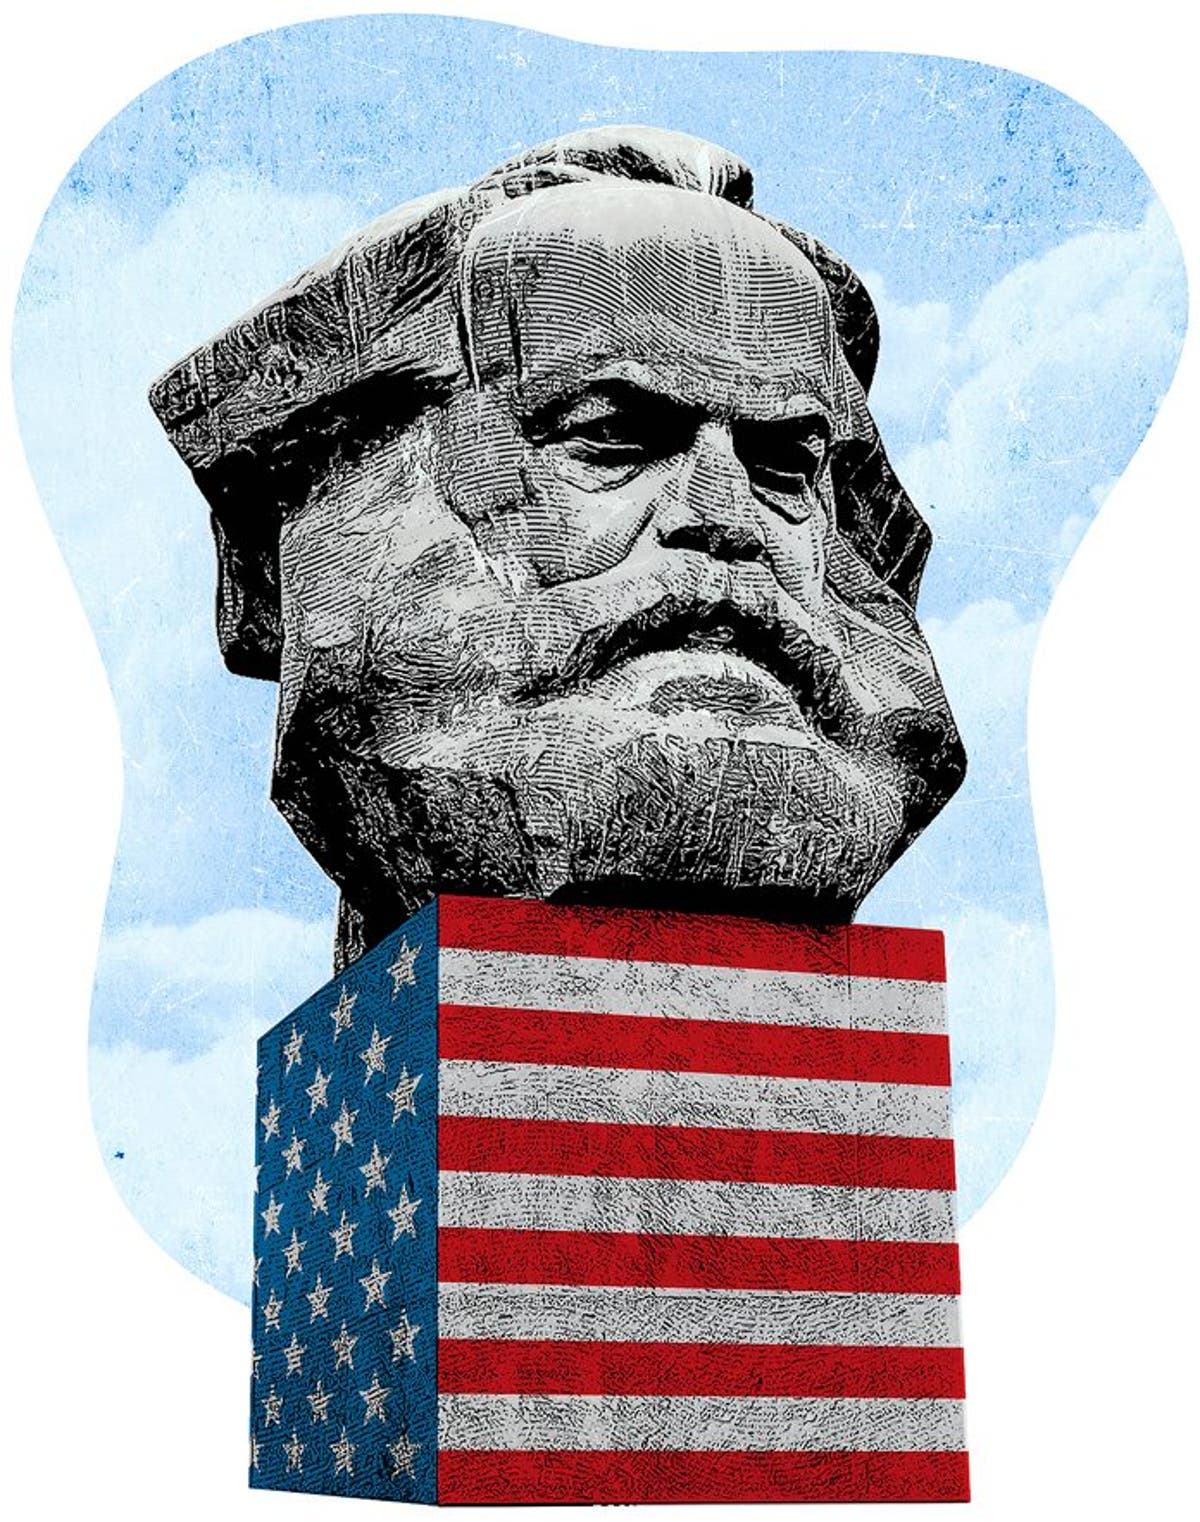 The Cultural Marxist attack on Western society - Washington Times